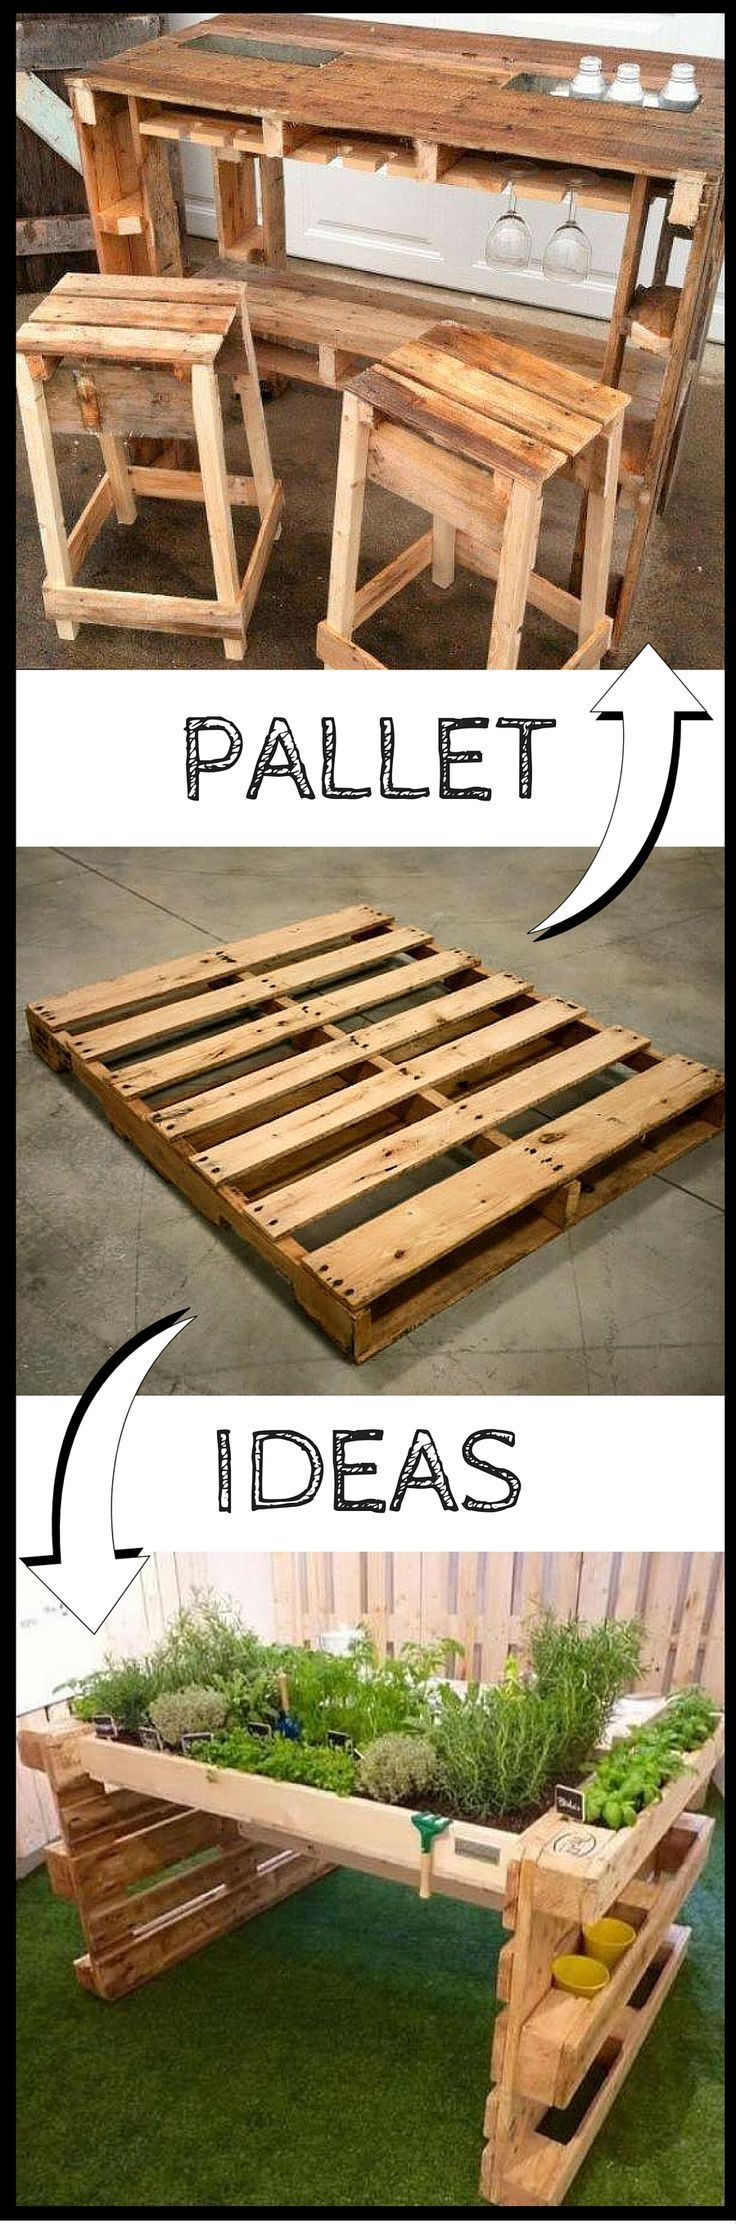 backyard 200 Ways To Recycle Wooden Pallets Great for The Home Great Resellers Watch The Video For All These Furniture Ideas: vid.staged.com/L4Qs...